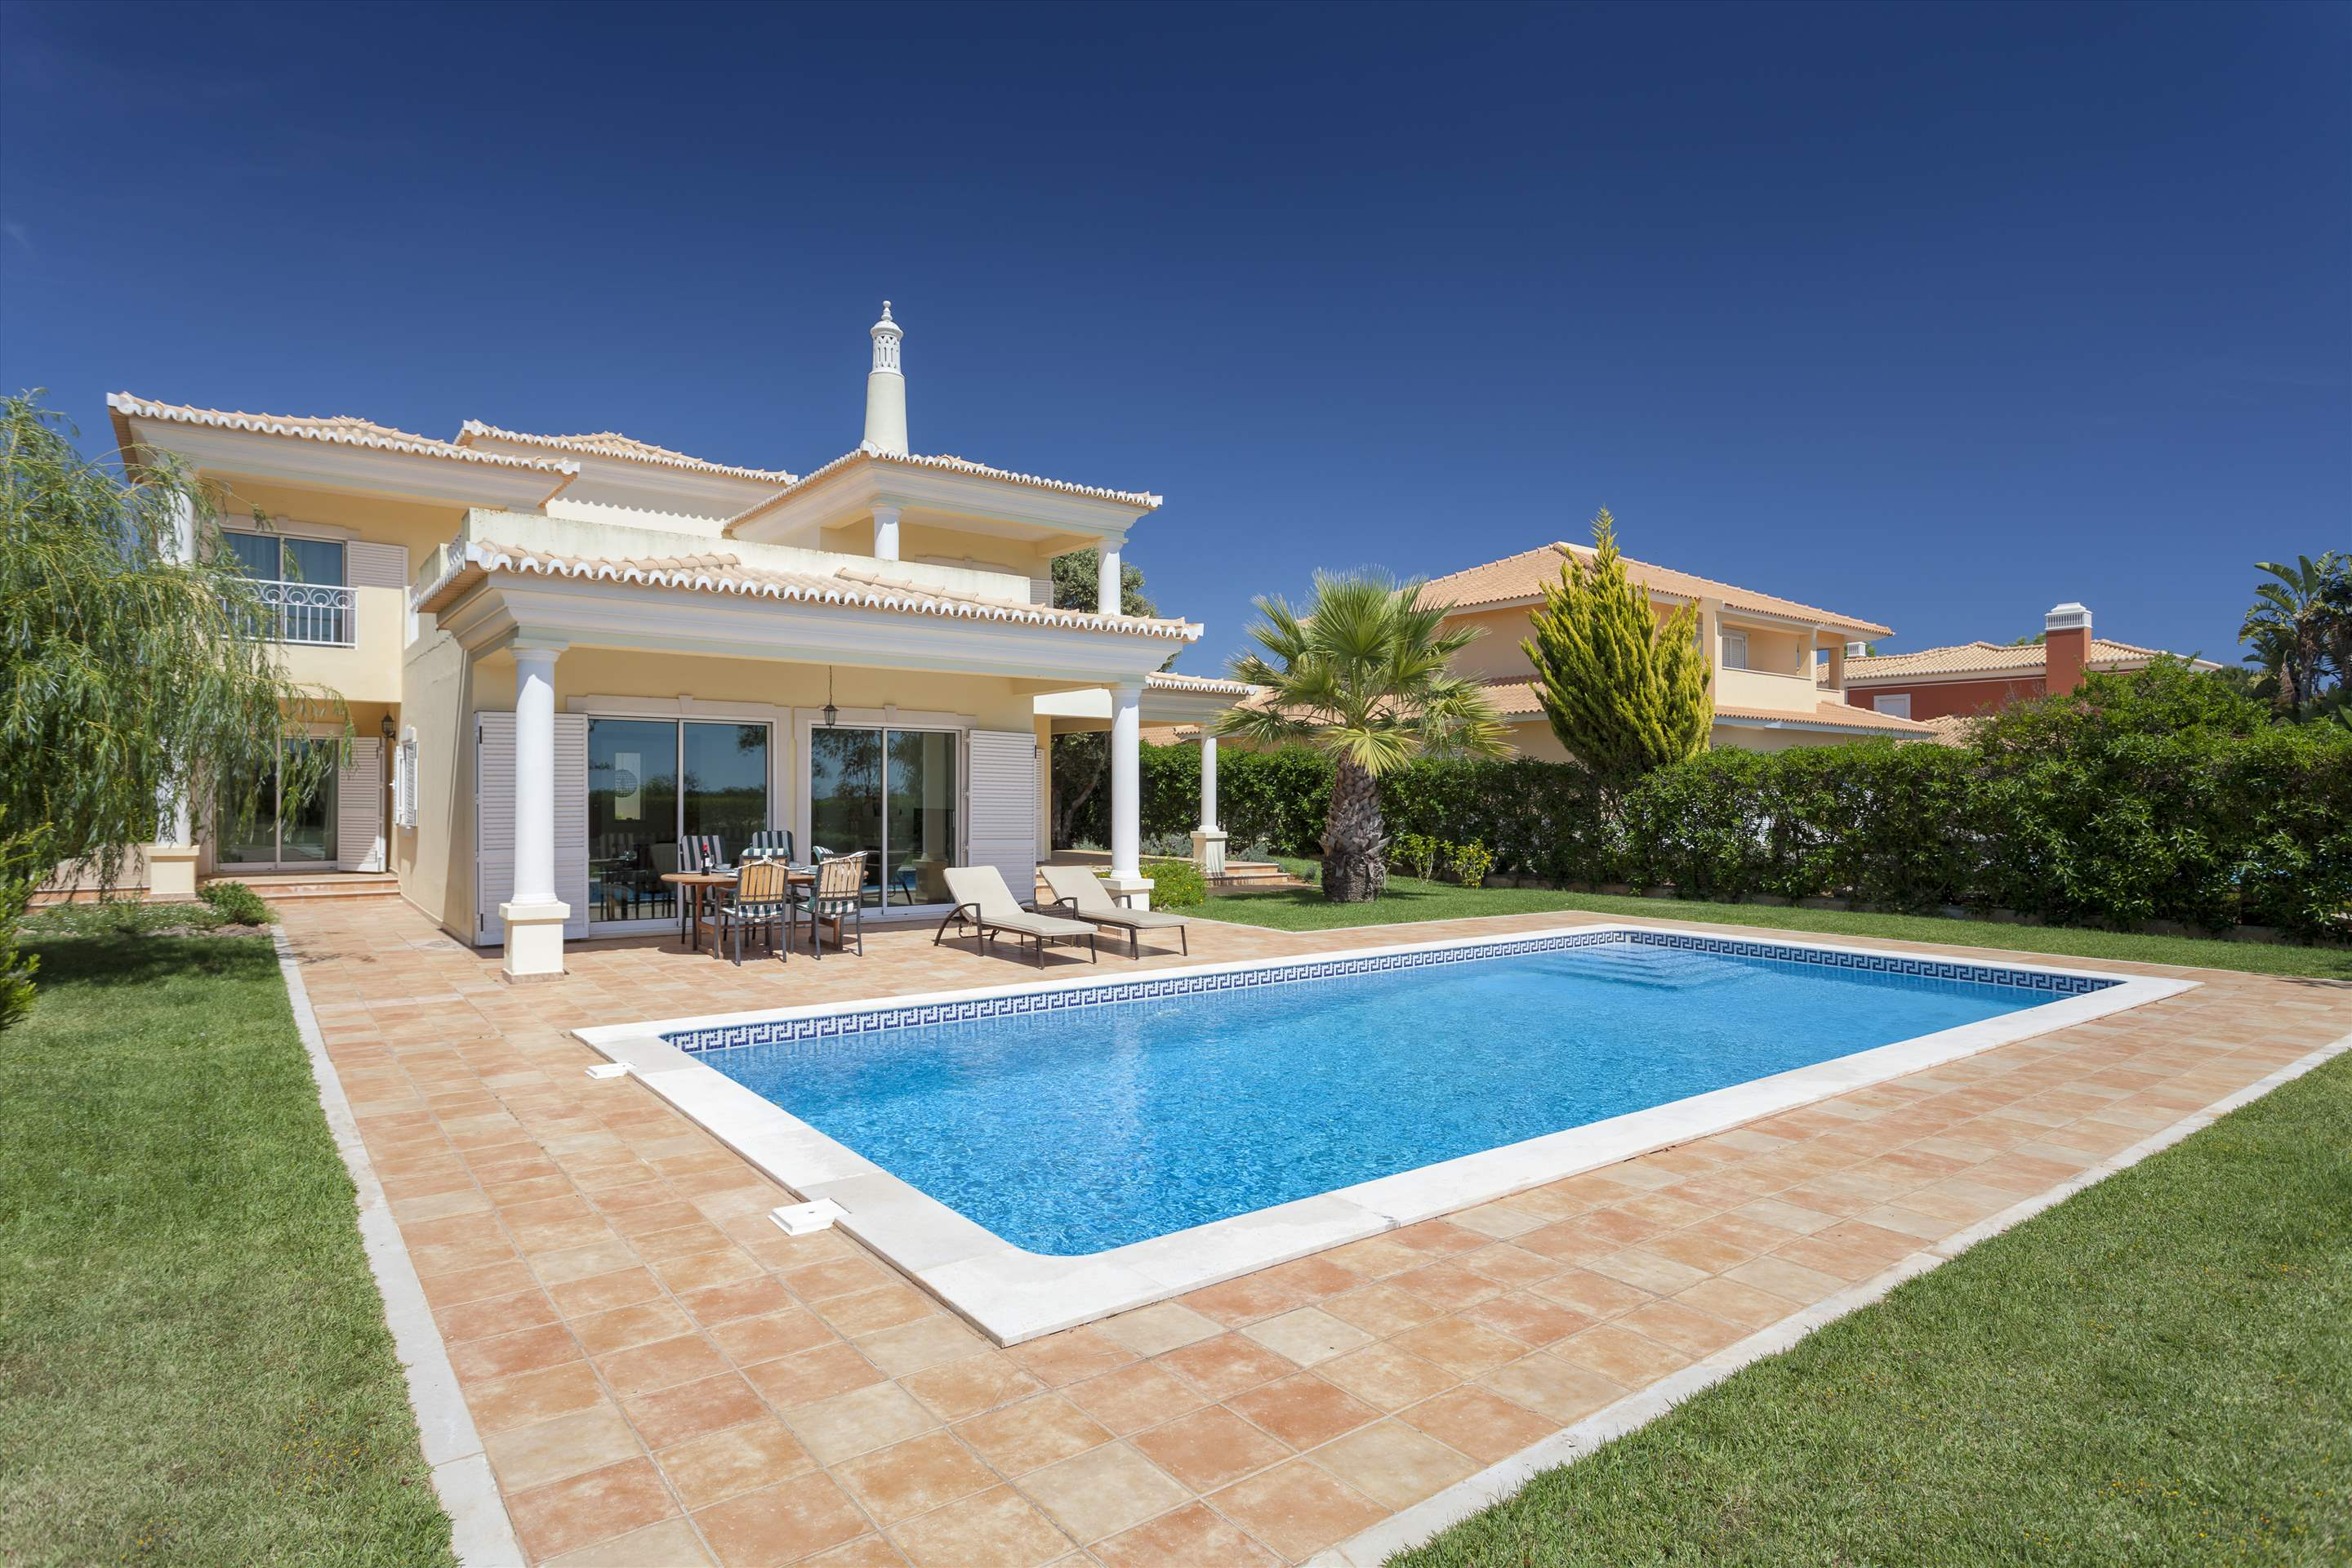 Villa Laguna Golf, 4 bedroom villa in Vilamoura Area, Algarve Photo #1